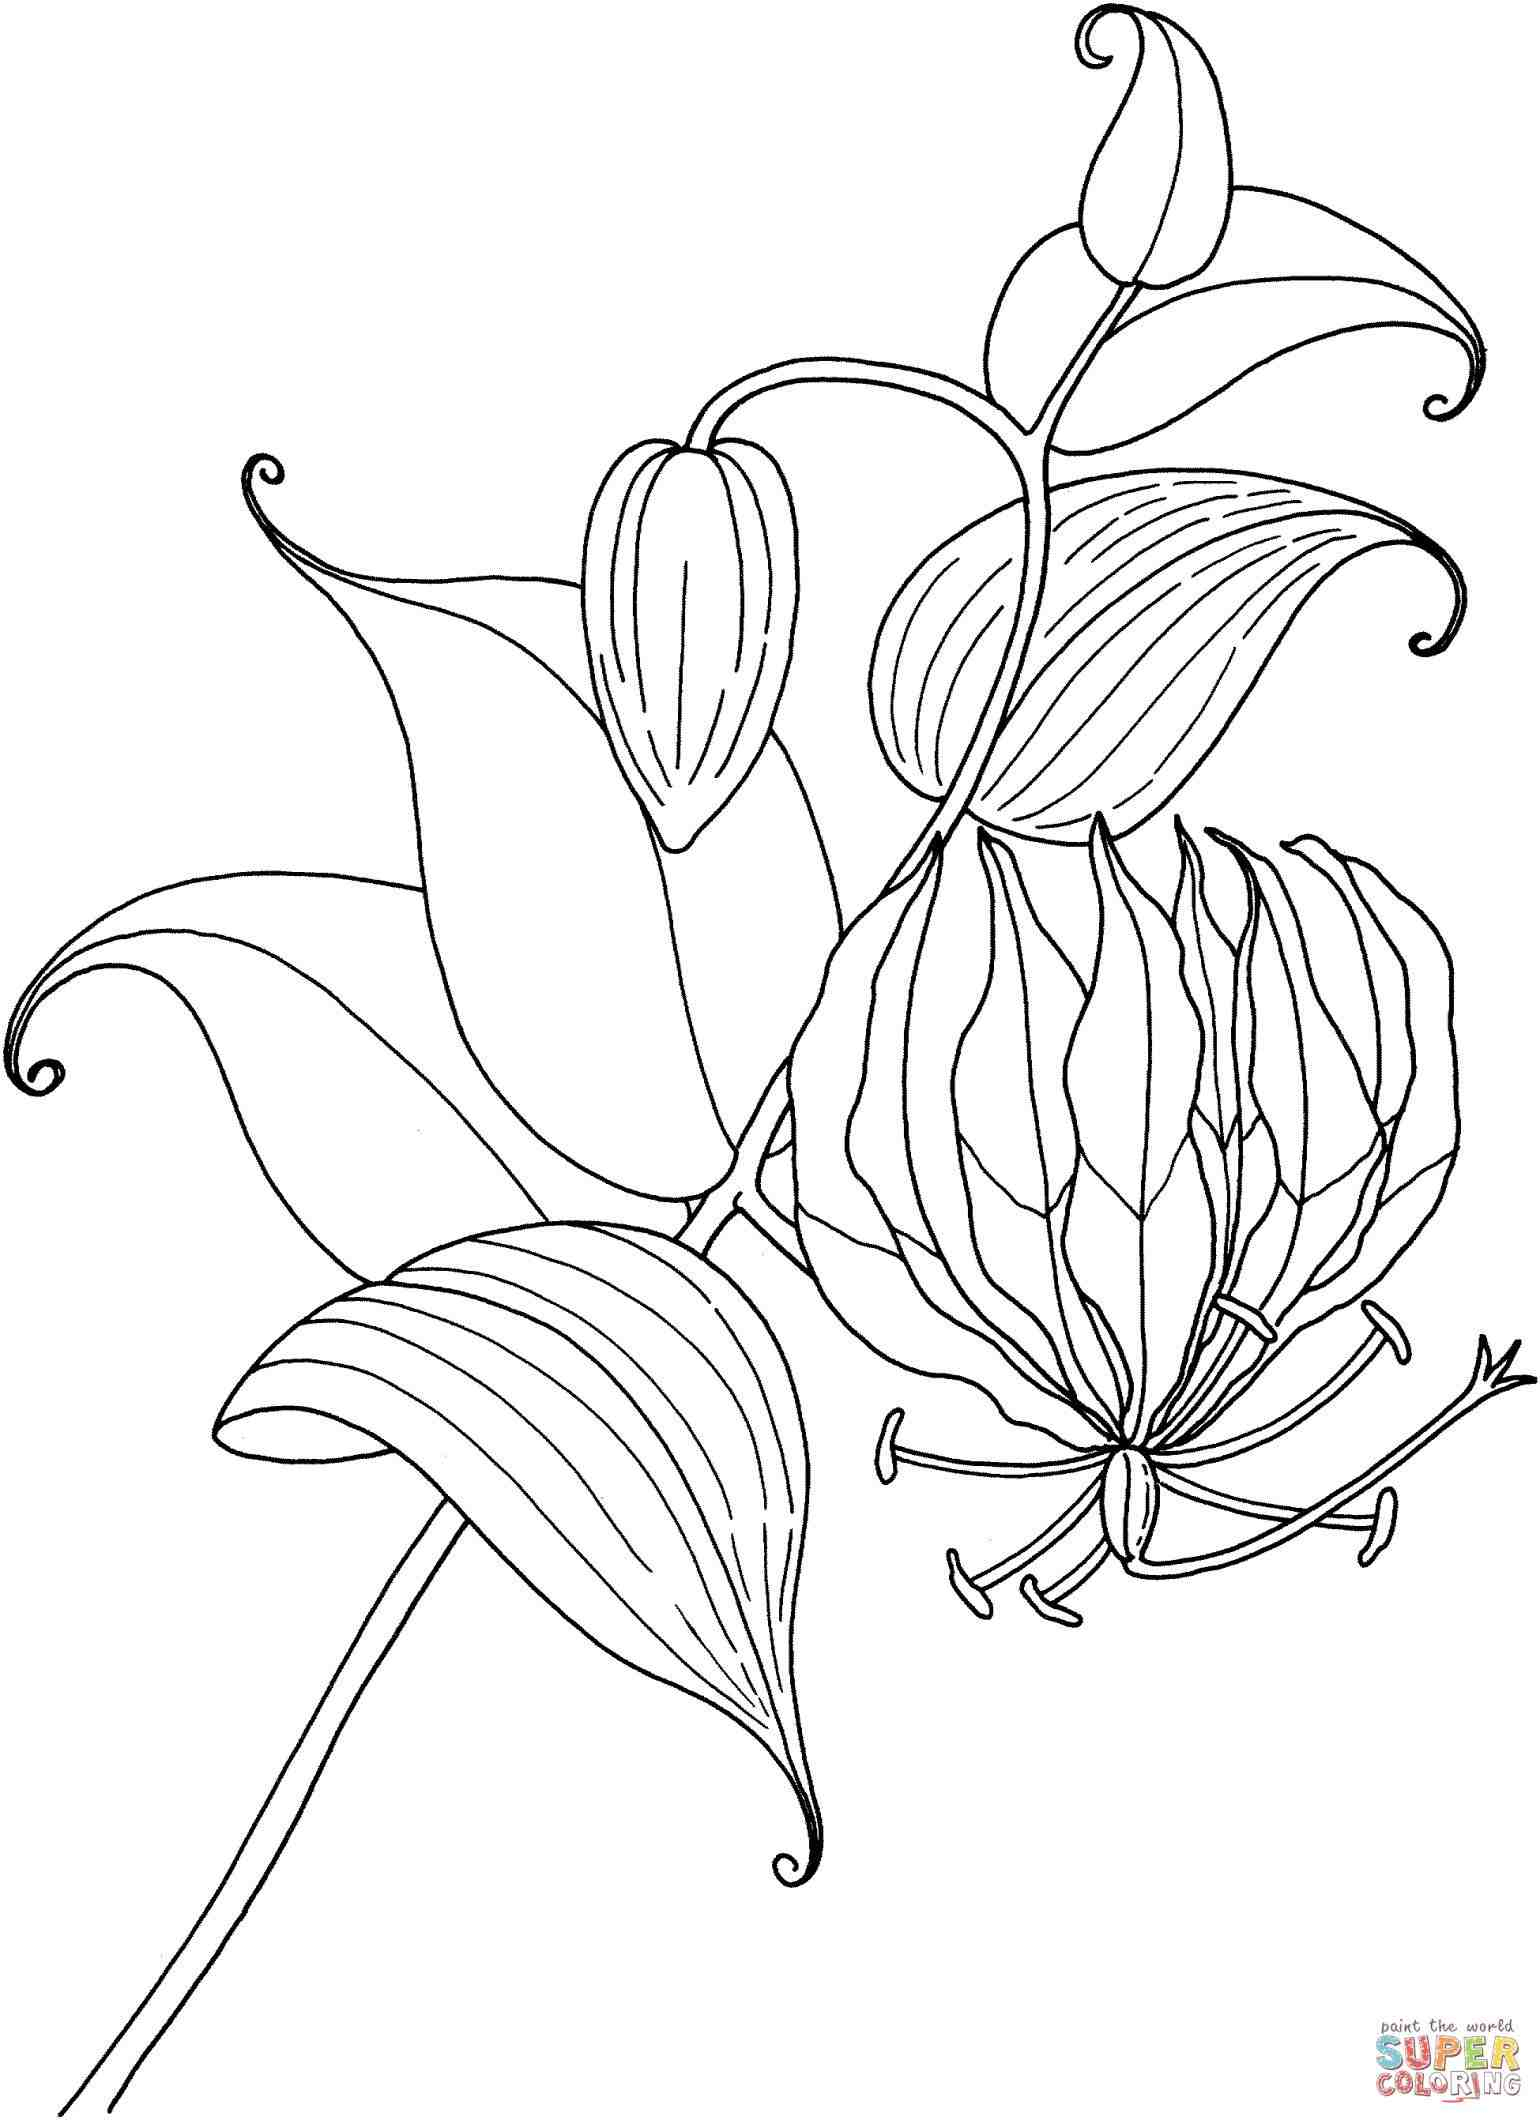 calla lily outline simple calla lily drawing at getdrawings free download calla lily outline